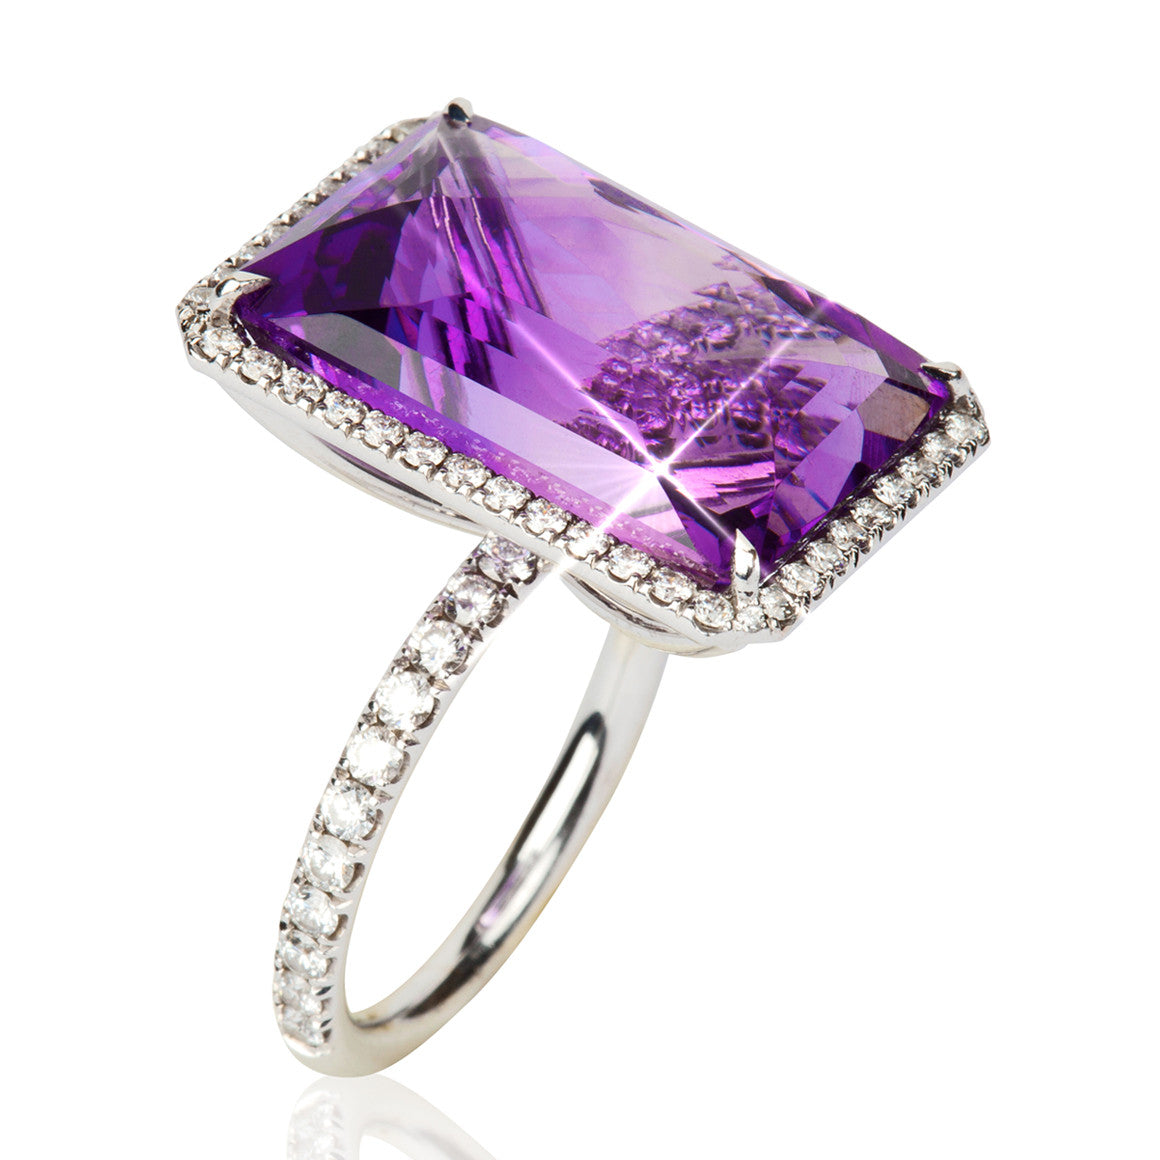 zoom tw purple gold ct ring white mv kaystore zm hover to kay rings round cut diamond engagement en